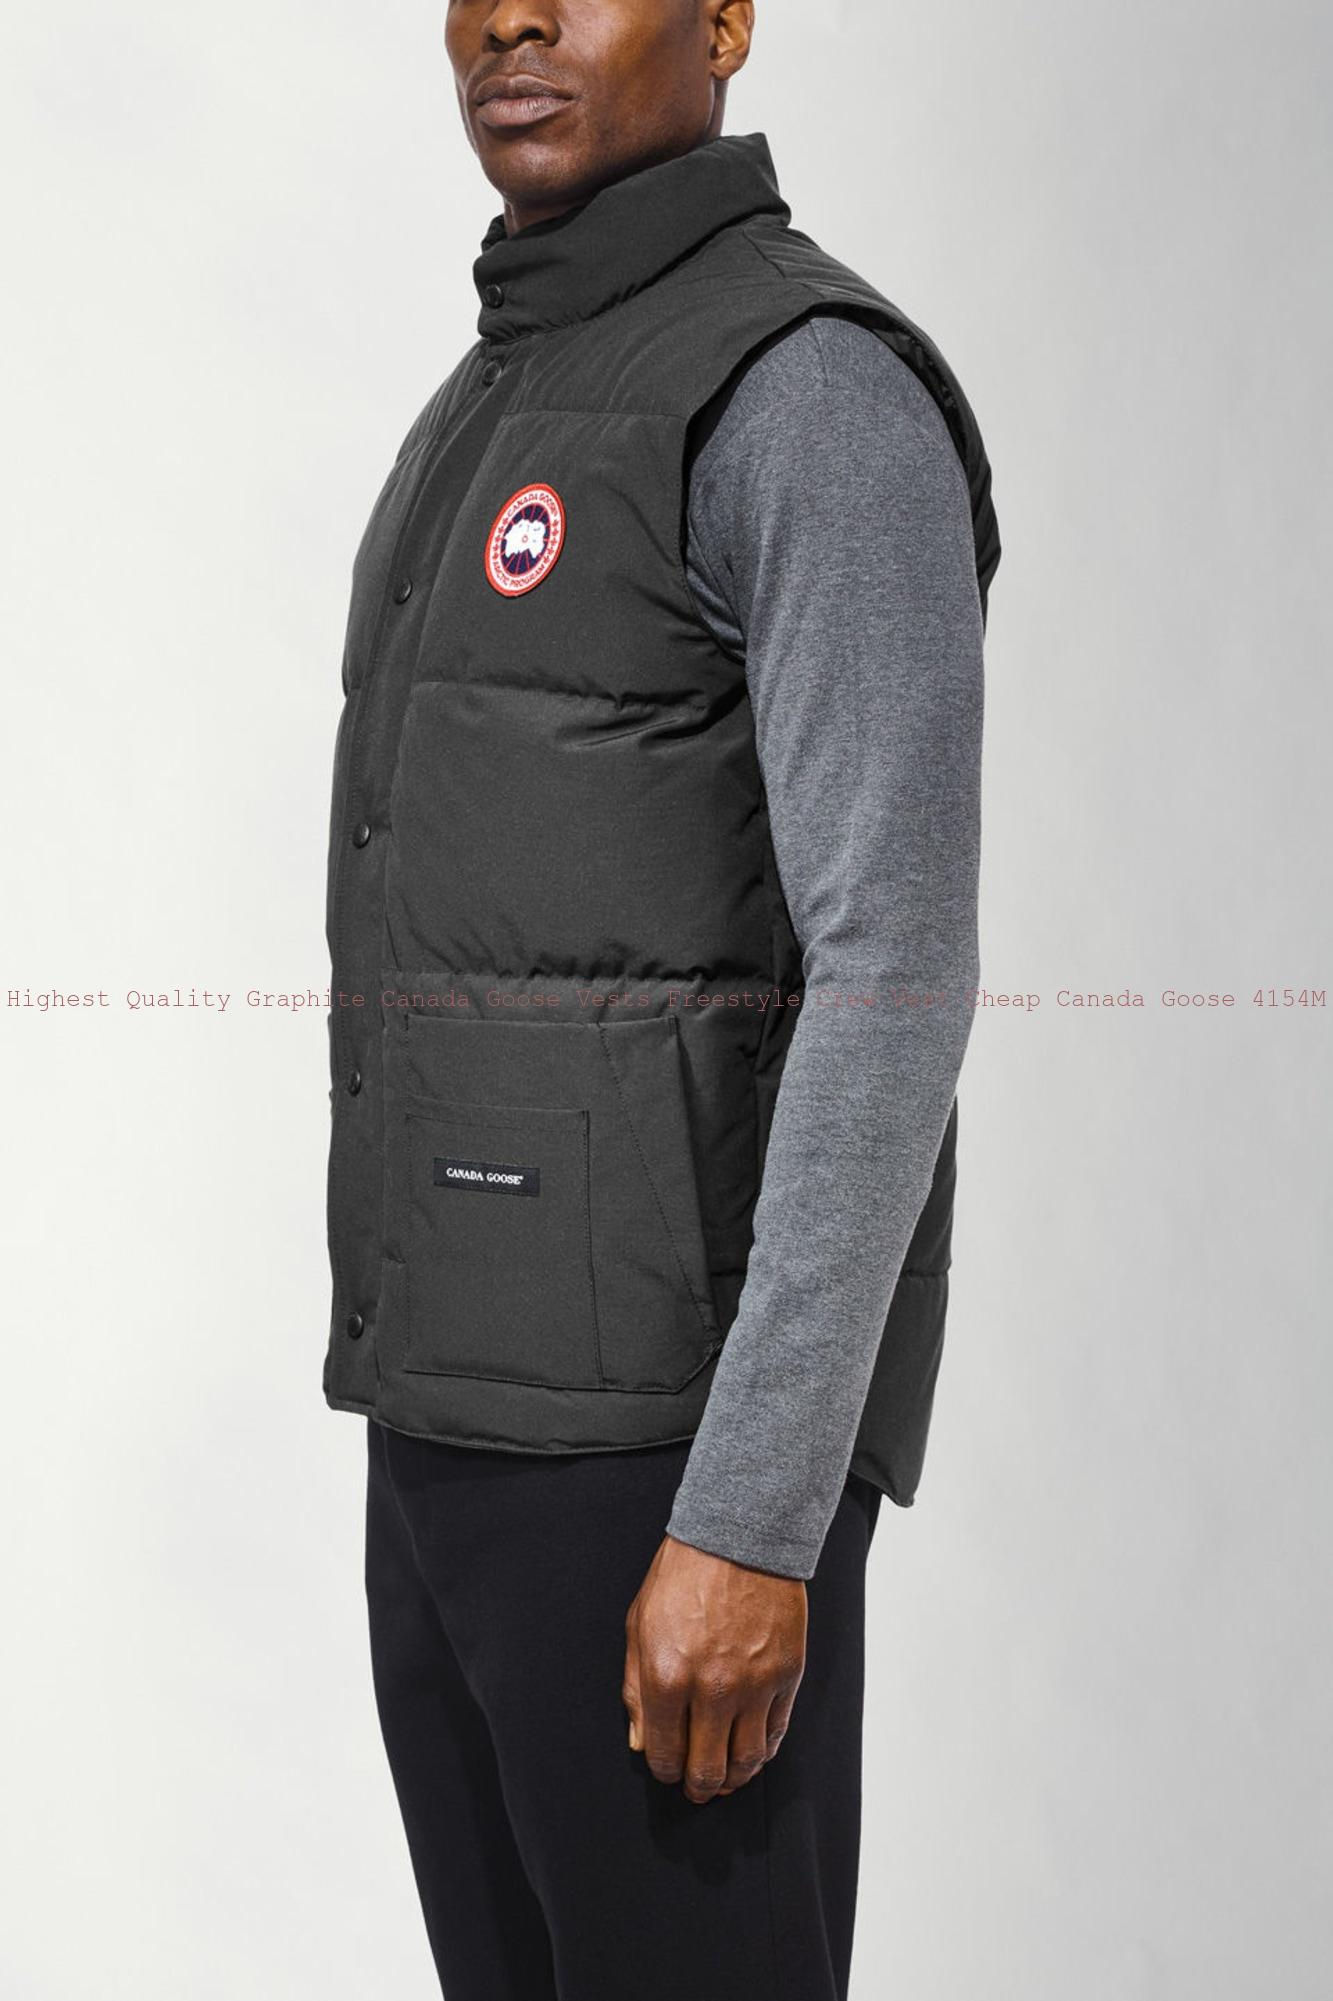 Highest Quality Graphite Canada Goose Vests Freestyle Crew Vest Cheap Canada  Goose 4154M d24ddbb8e11d